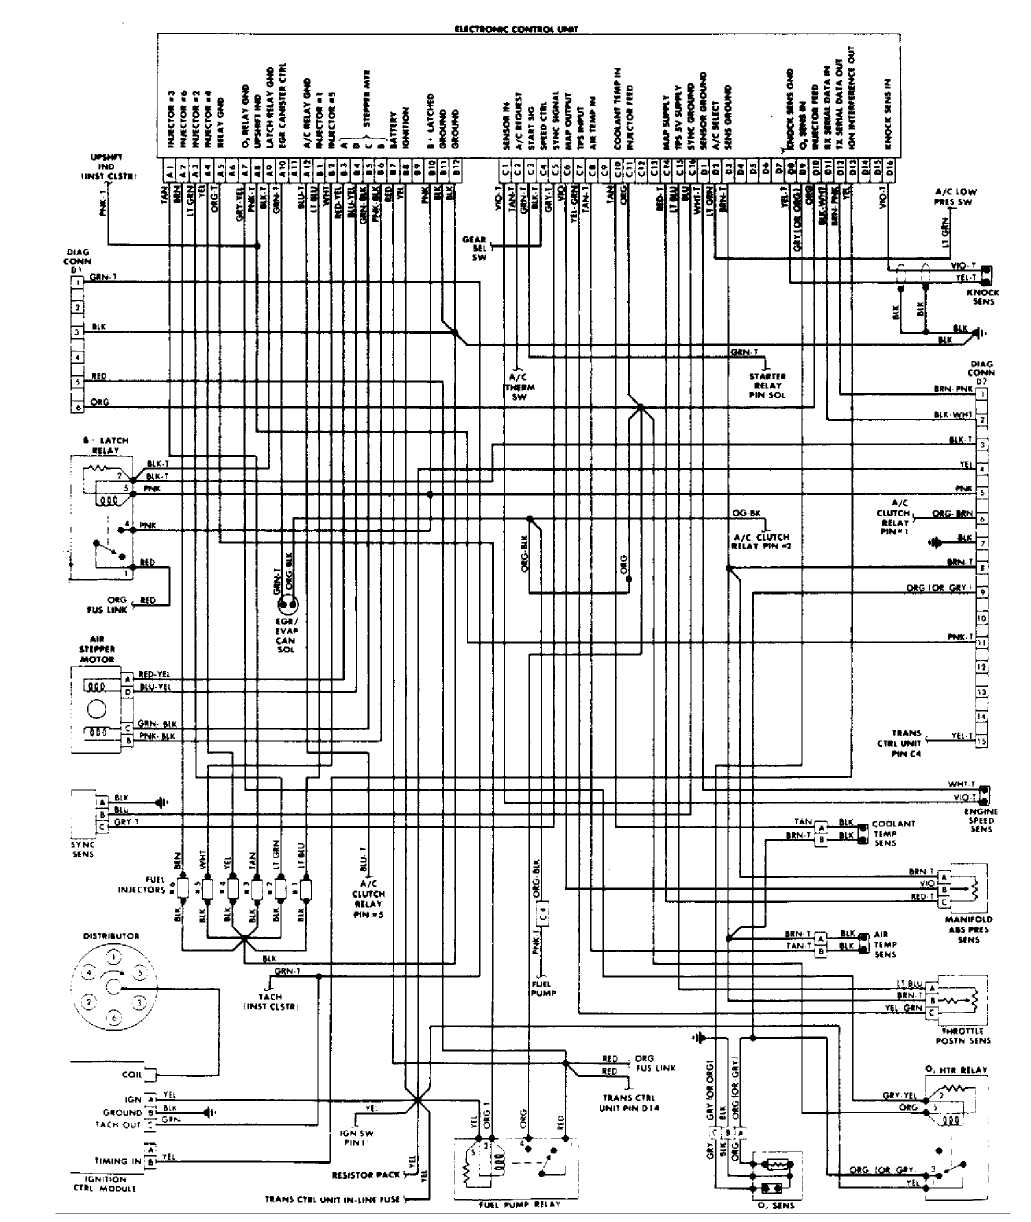 3126 caterpillar ecm diagram 3126 caterpillar engine diagram cat 3126 ecm wiring diagram | free wiring diagram